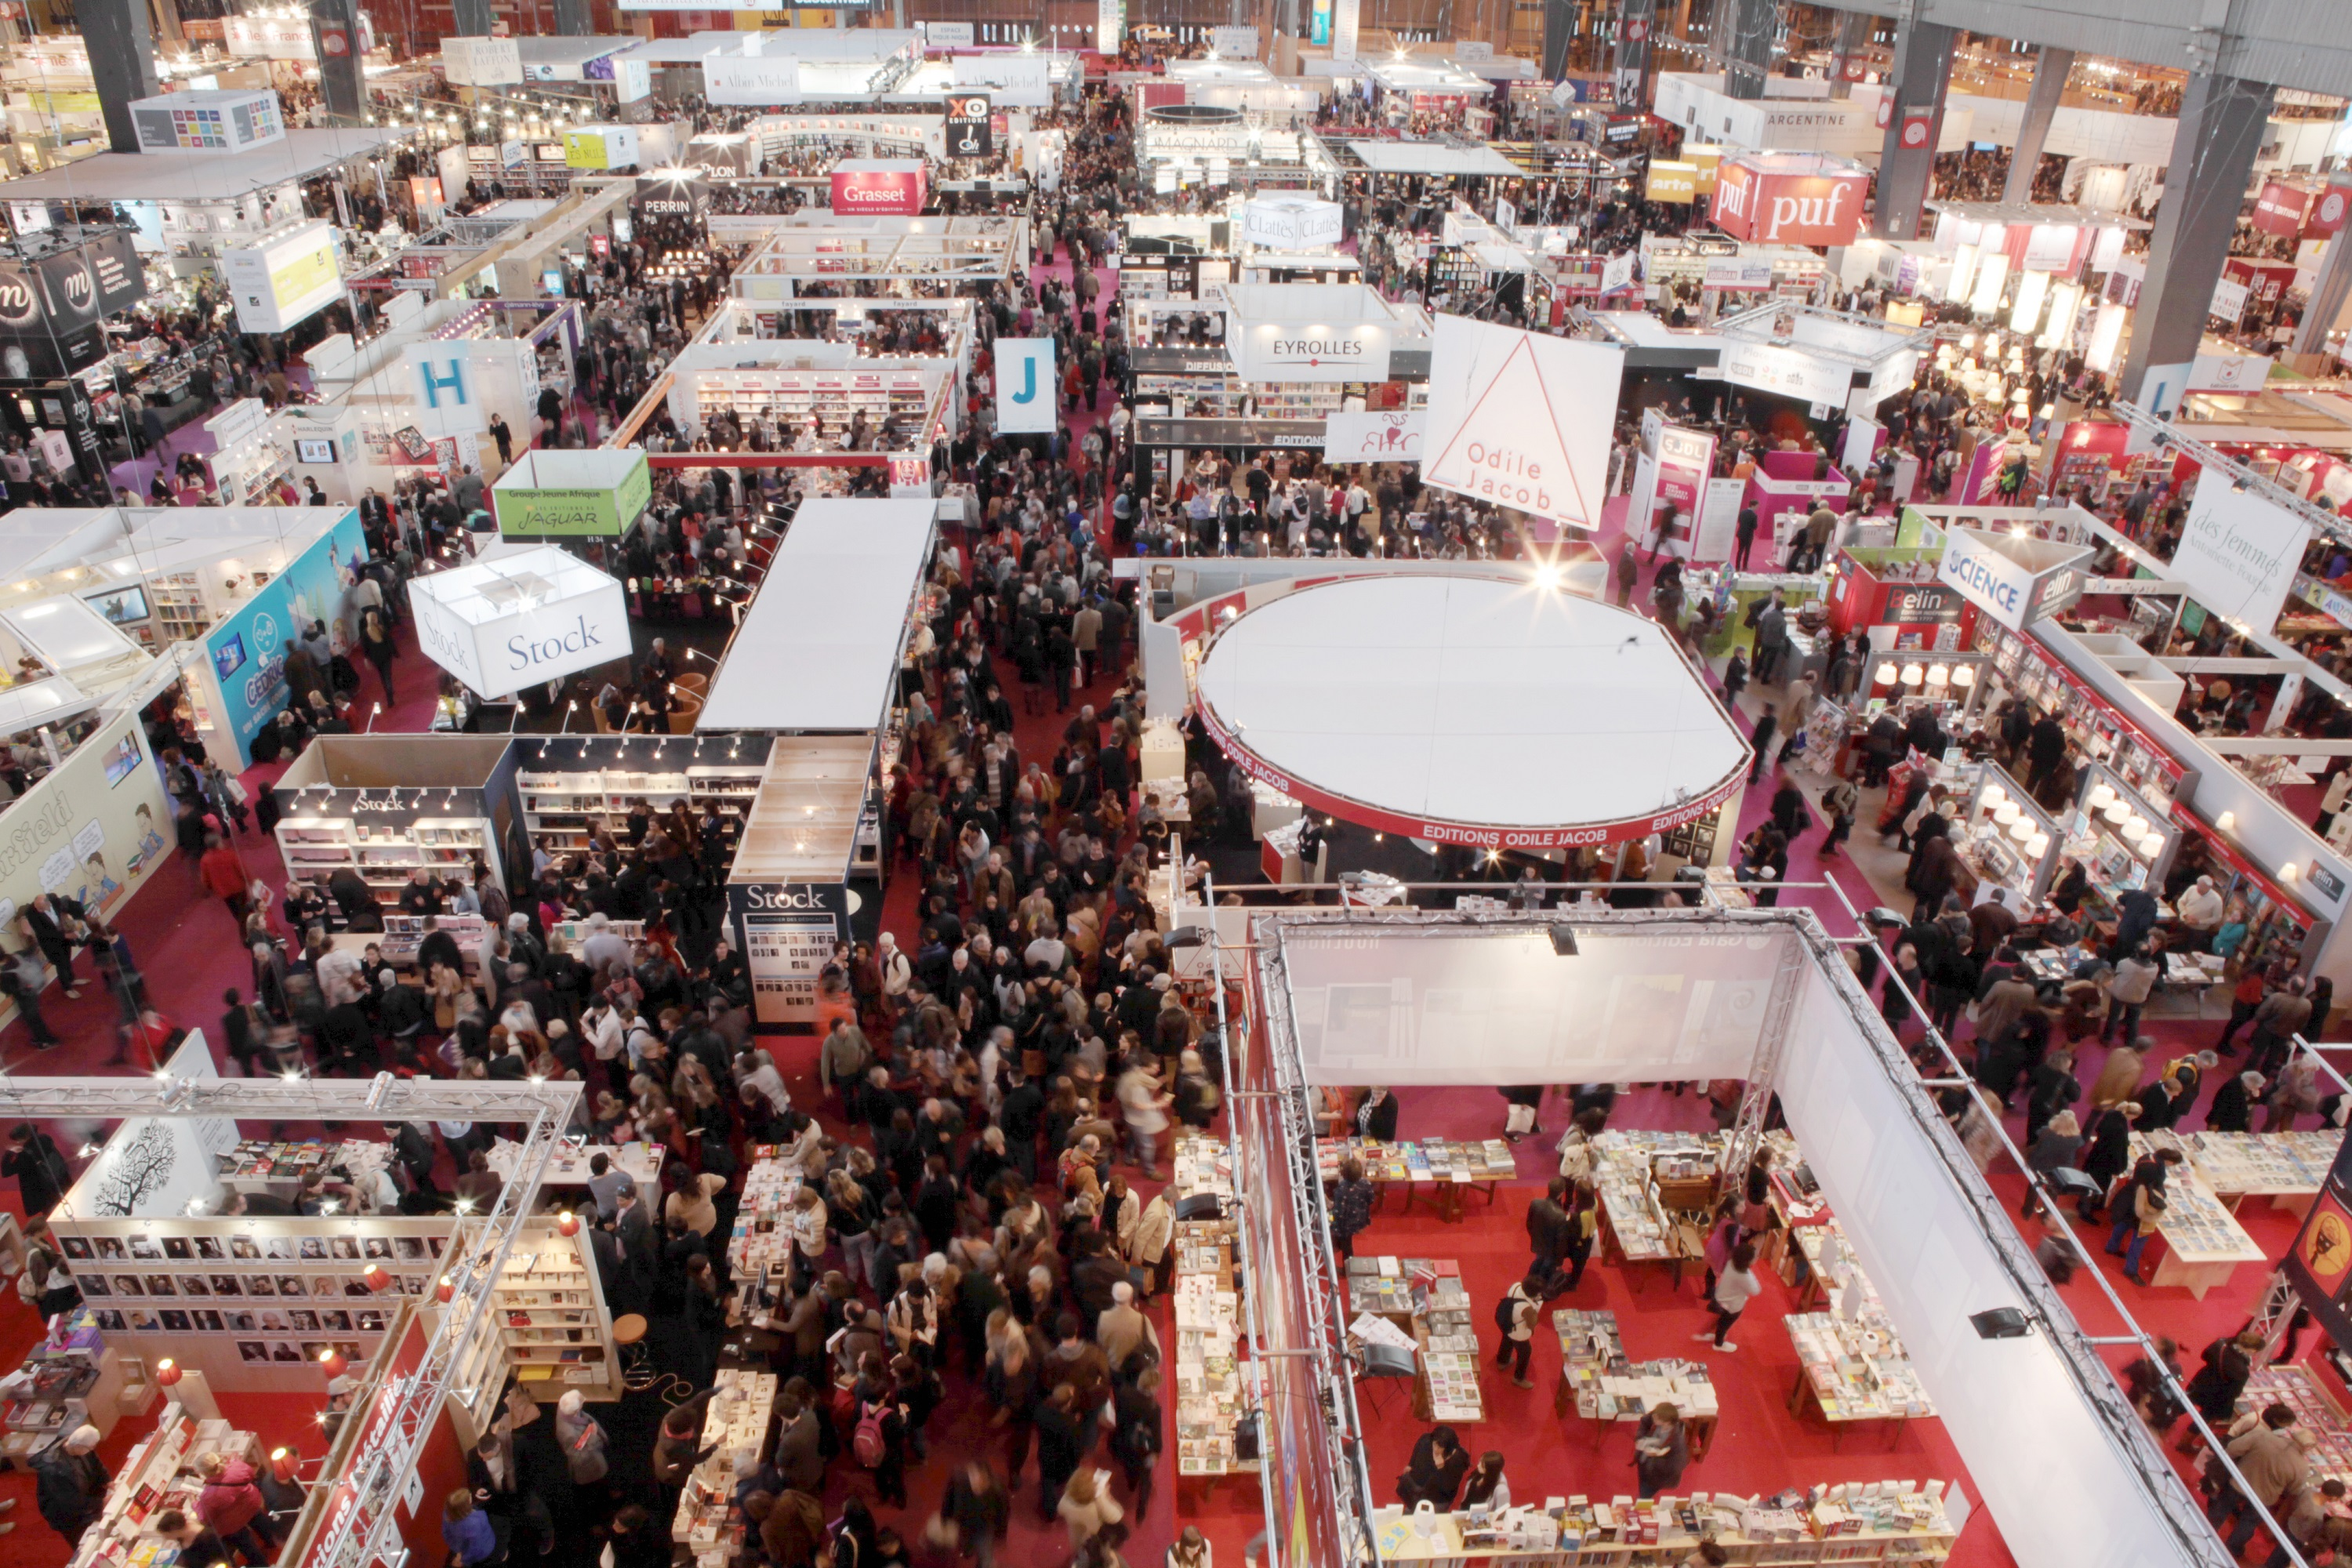 Radio france au salon du livre de paris for Salon des vignerons paris 2017